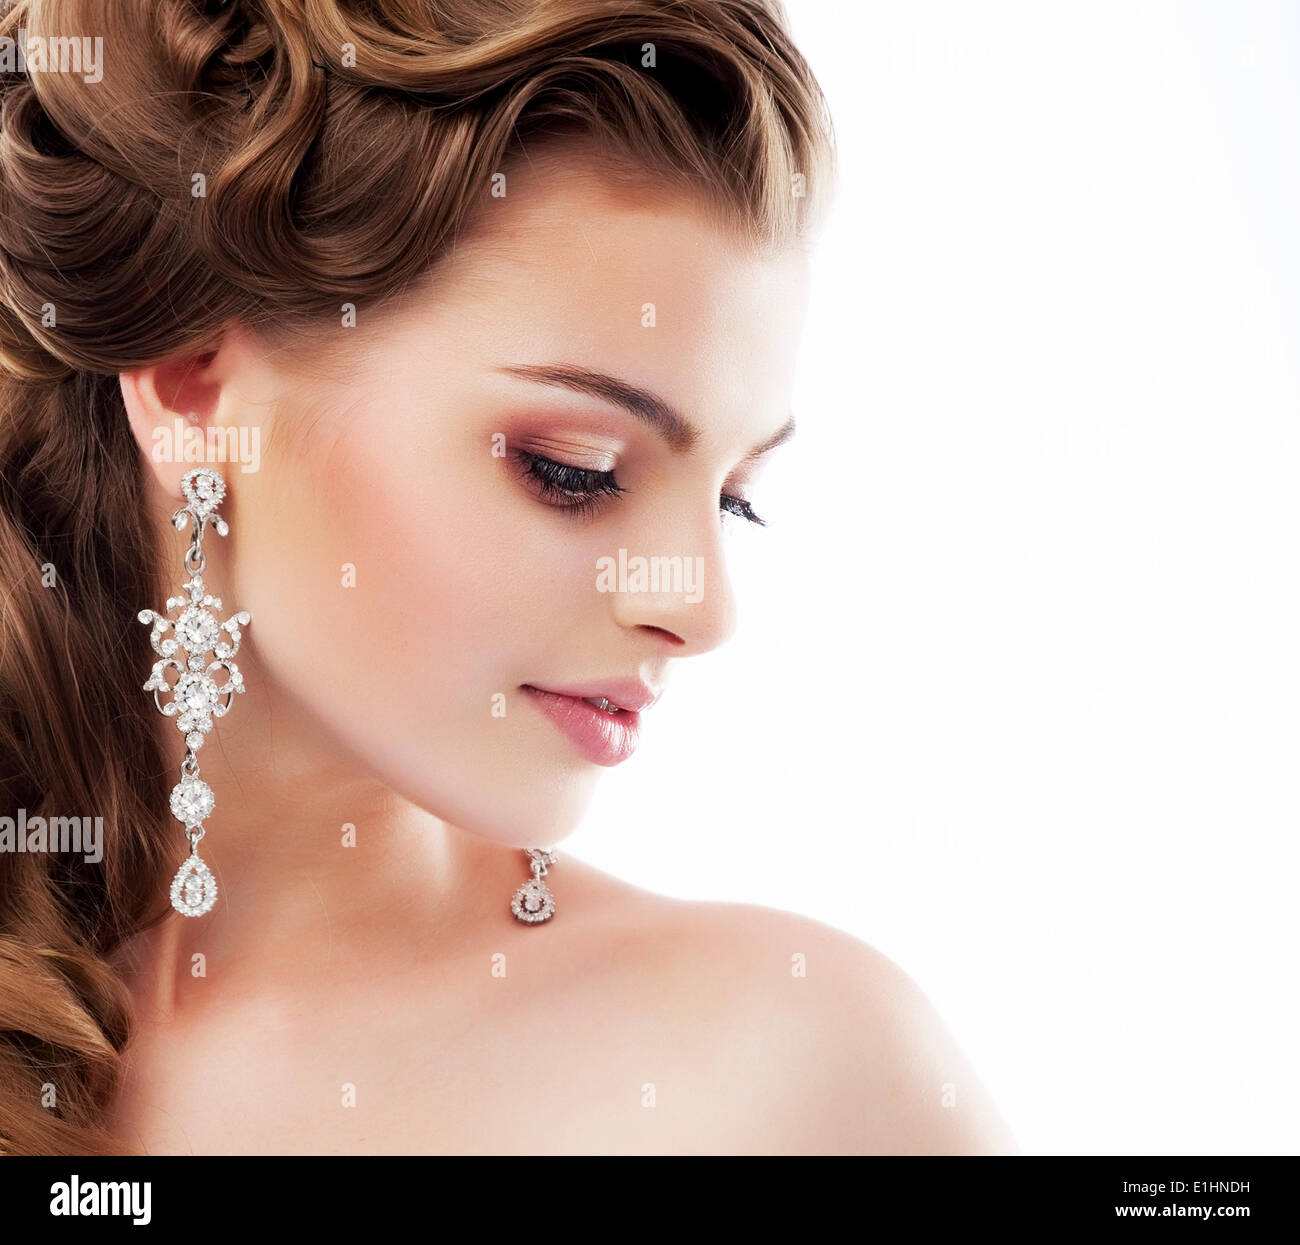 Pure Beauty. Aristocratic Profile of smiling Lady with Glossy Diamond Earrings. Femininity & Sophistication - Stock Image